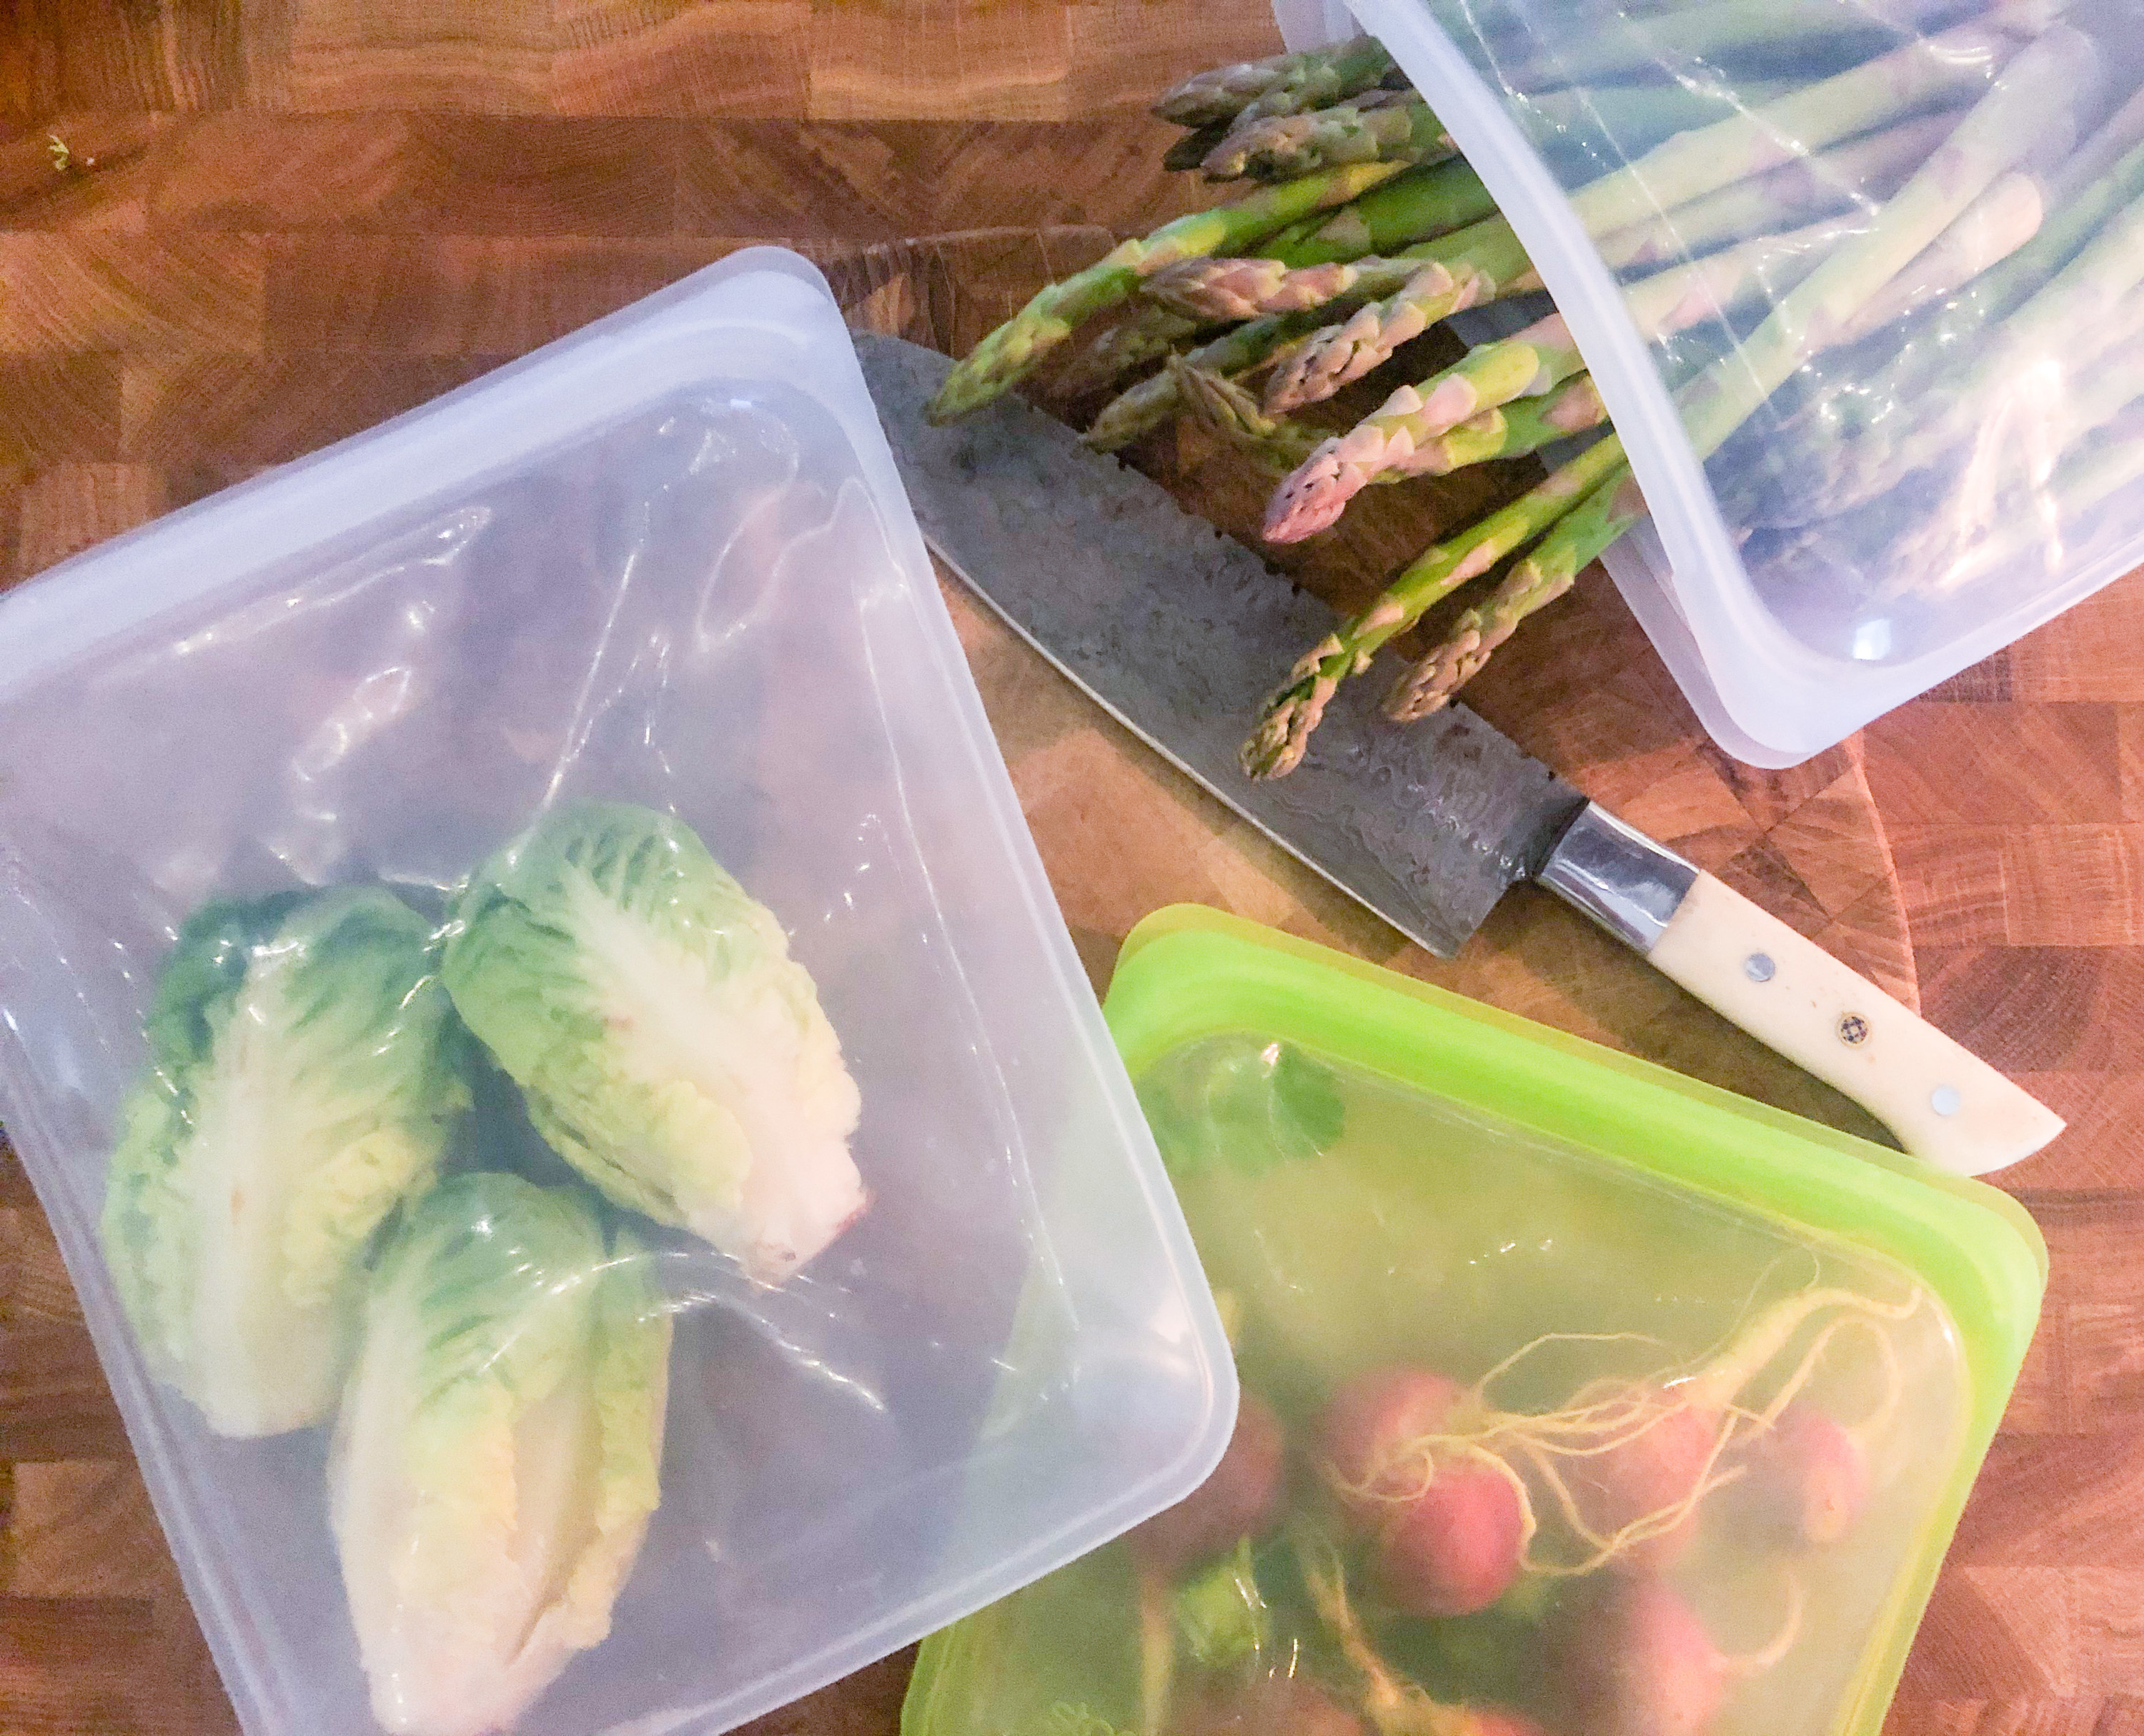 A flatlay of the silicone bags, all containing fresh produce, like radishes, lettuce, and asparagus